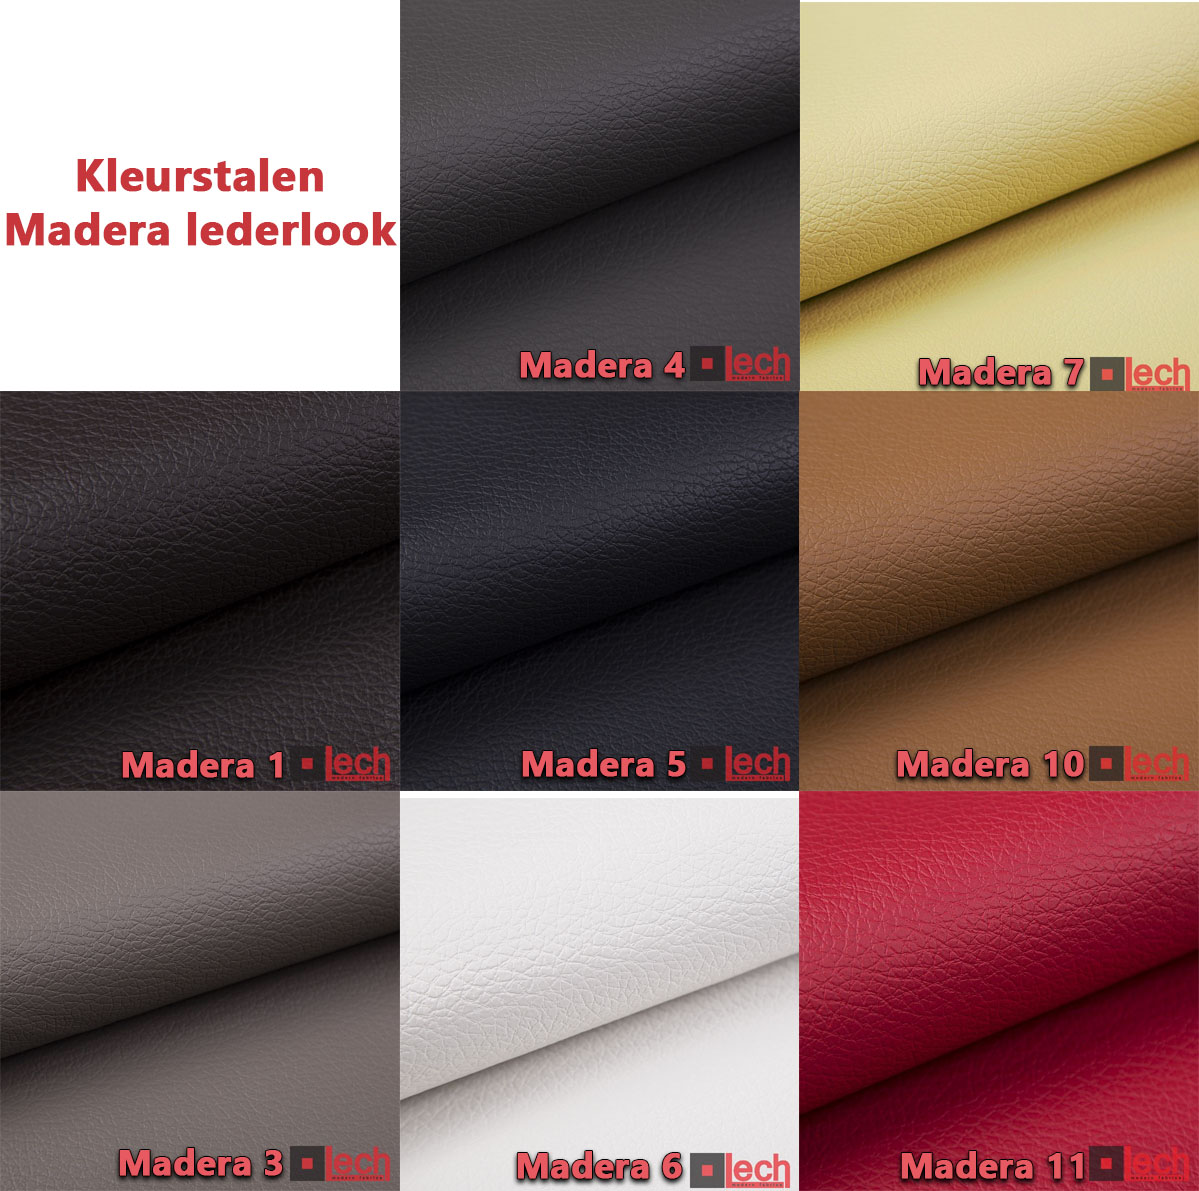 kleurstalen-madera-lederlook-seats4you